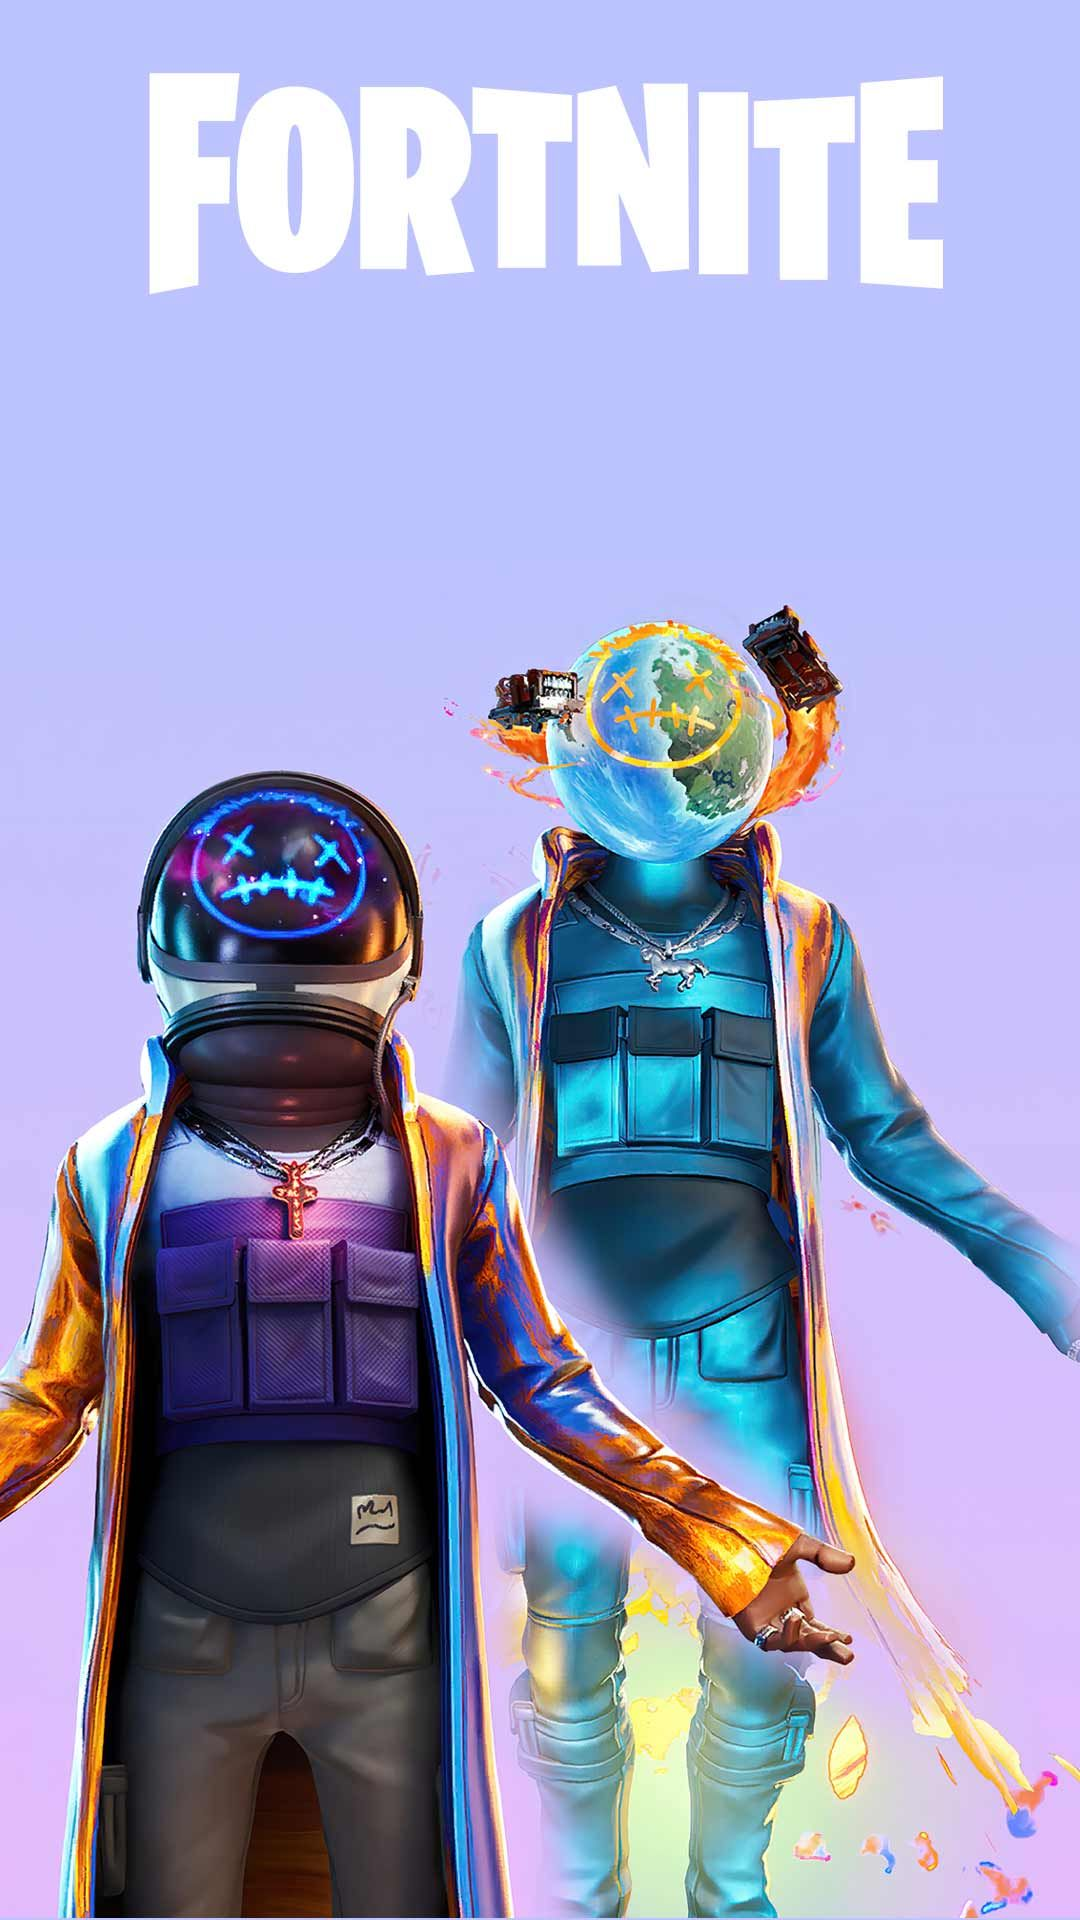 Astro Jack Fortnite Skin Wallpaper Hd Phone Backgrounds Art Poster For Iphone Android Home Screen In 2020 Fortnite Travis Scott Wallpapers Hd Phone Backgrounds